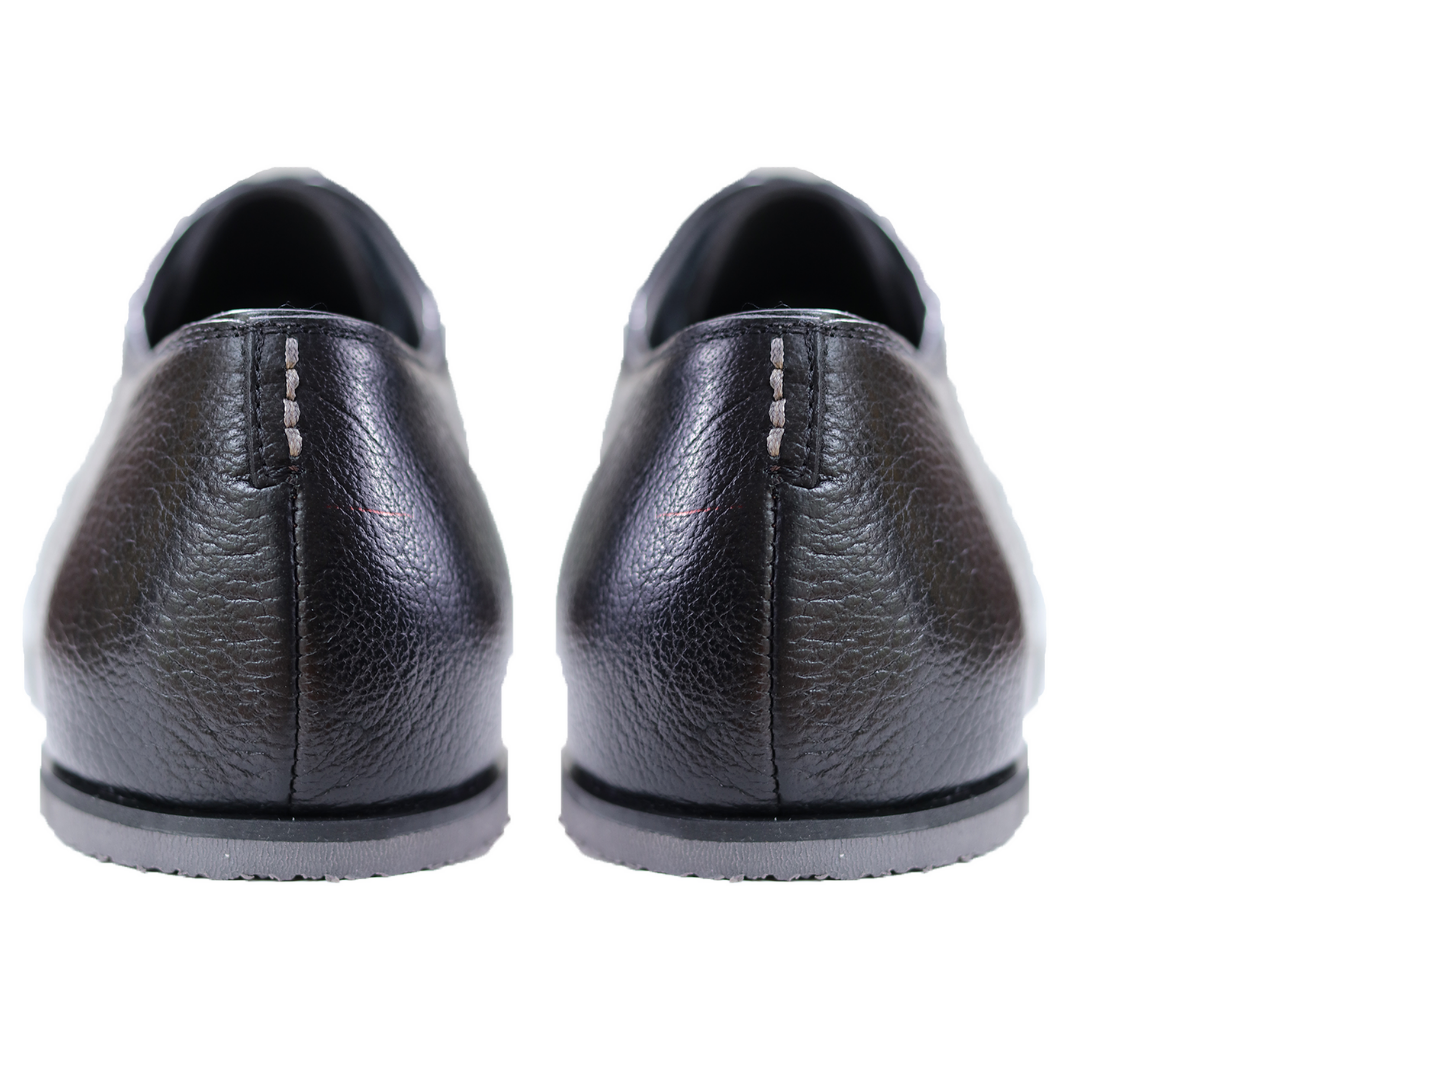 Zero Drop Dress Shoes. Crafted in Italy